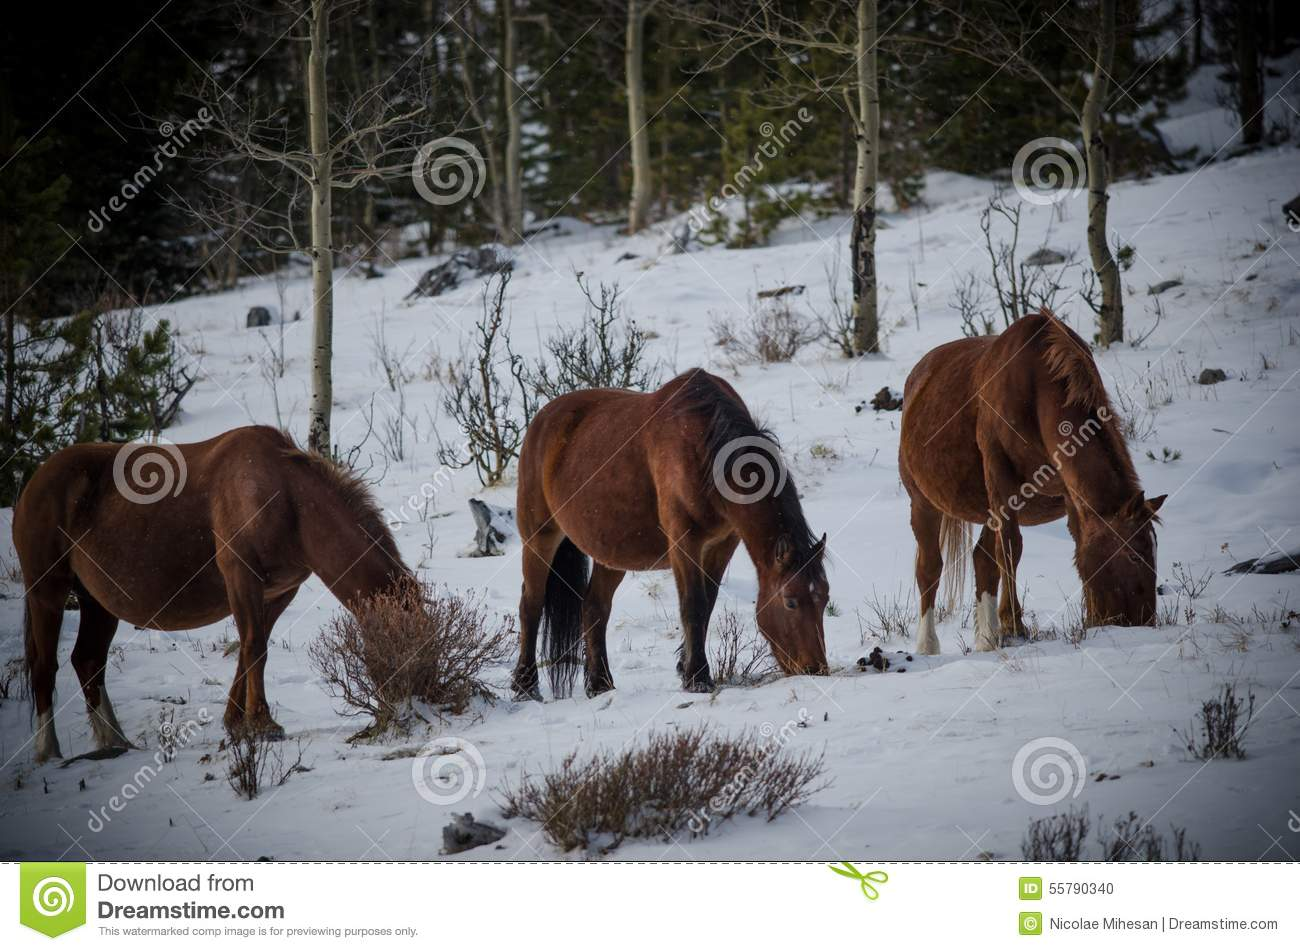 canadian rockies map with Stock Photo Wild Horses Kananaskis Winter Scenery Canadian Rockies Image55790340 on 18822514516 in addition Canada as well Stock Photo Wild Horses Kananaskis Winter Scenery Canadian Rockies Image55790340 further National Parks Tour further banffparklodge.